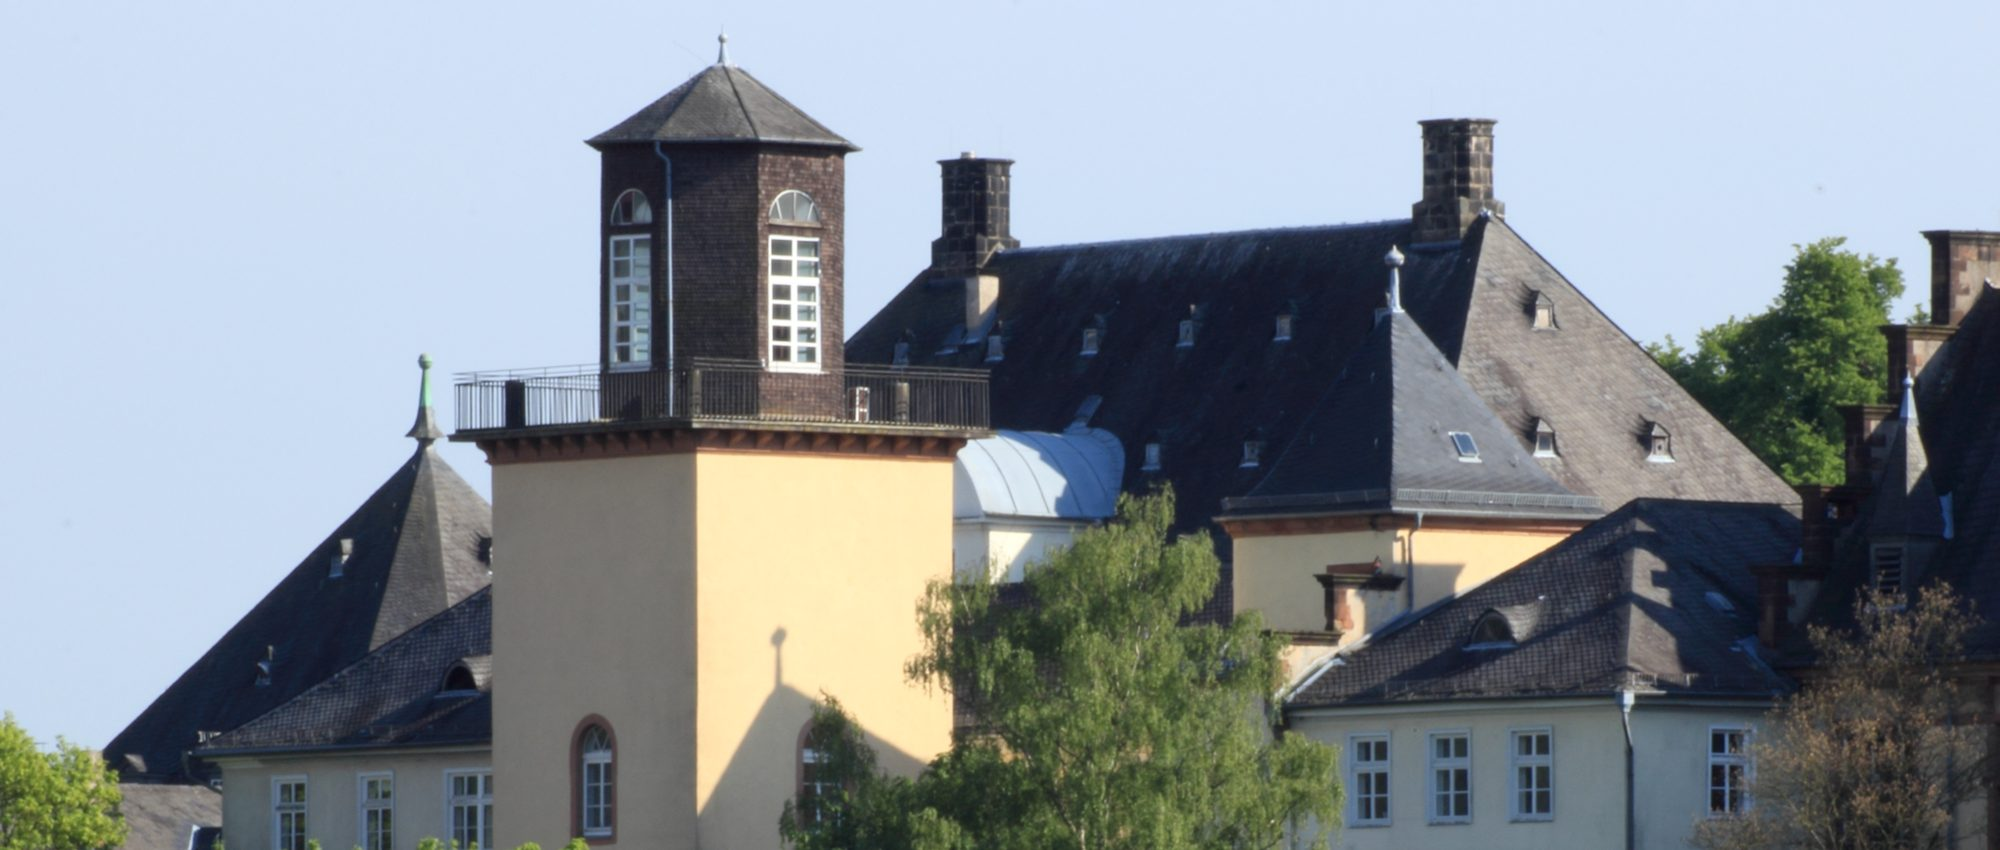 Gerling-Sternwarte der Philipps-Universität Marburg, Foto Jan Loske